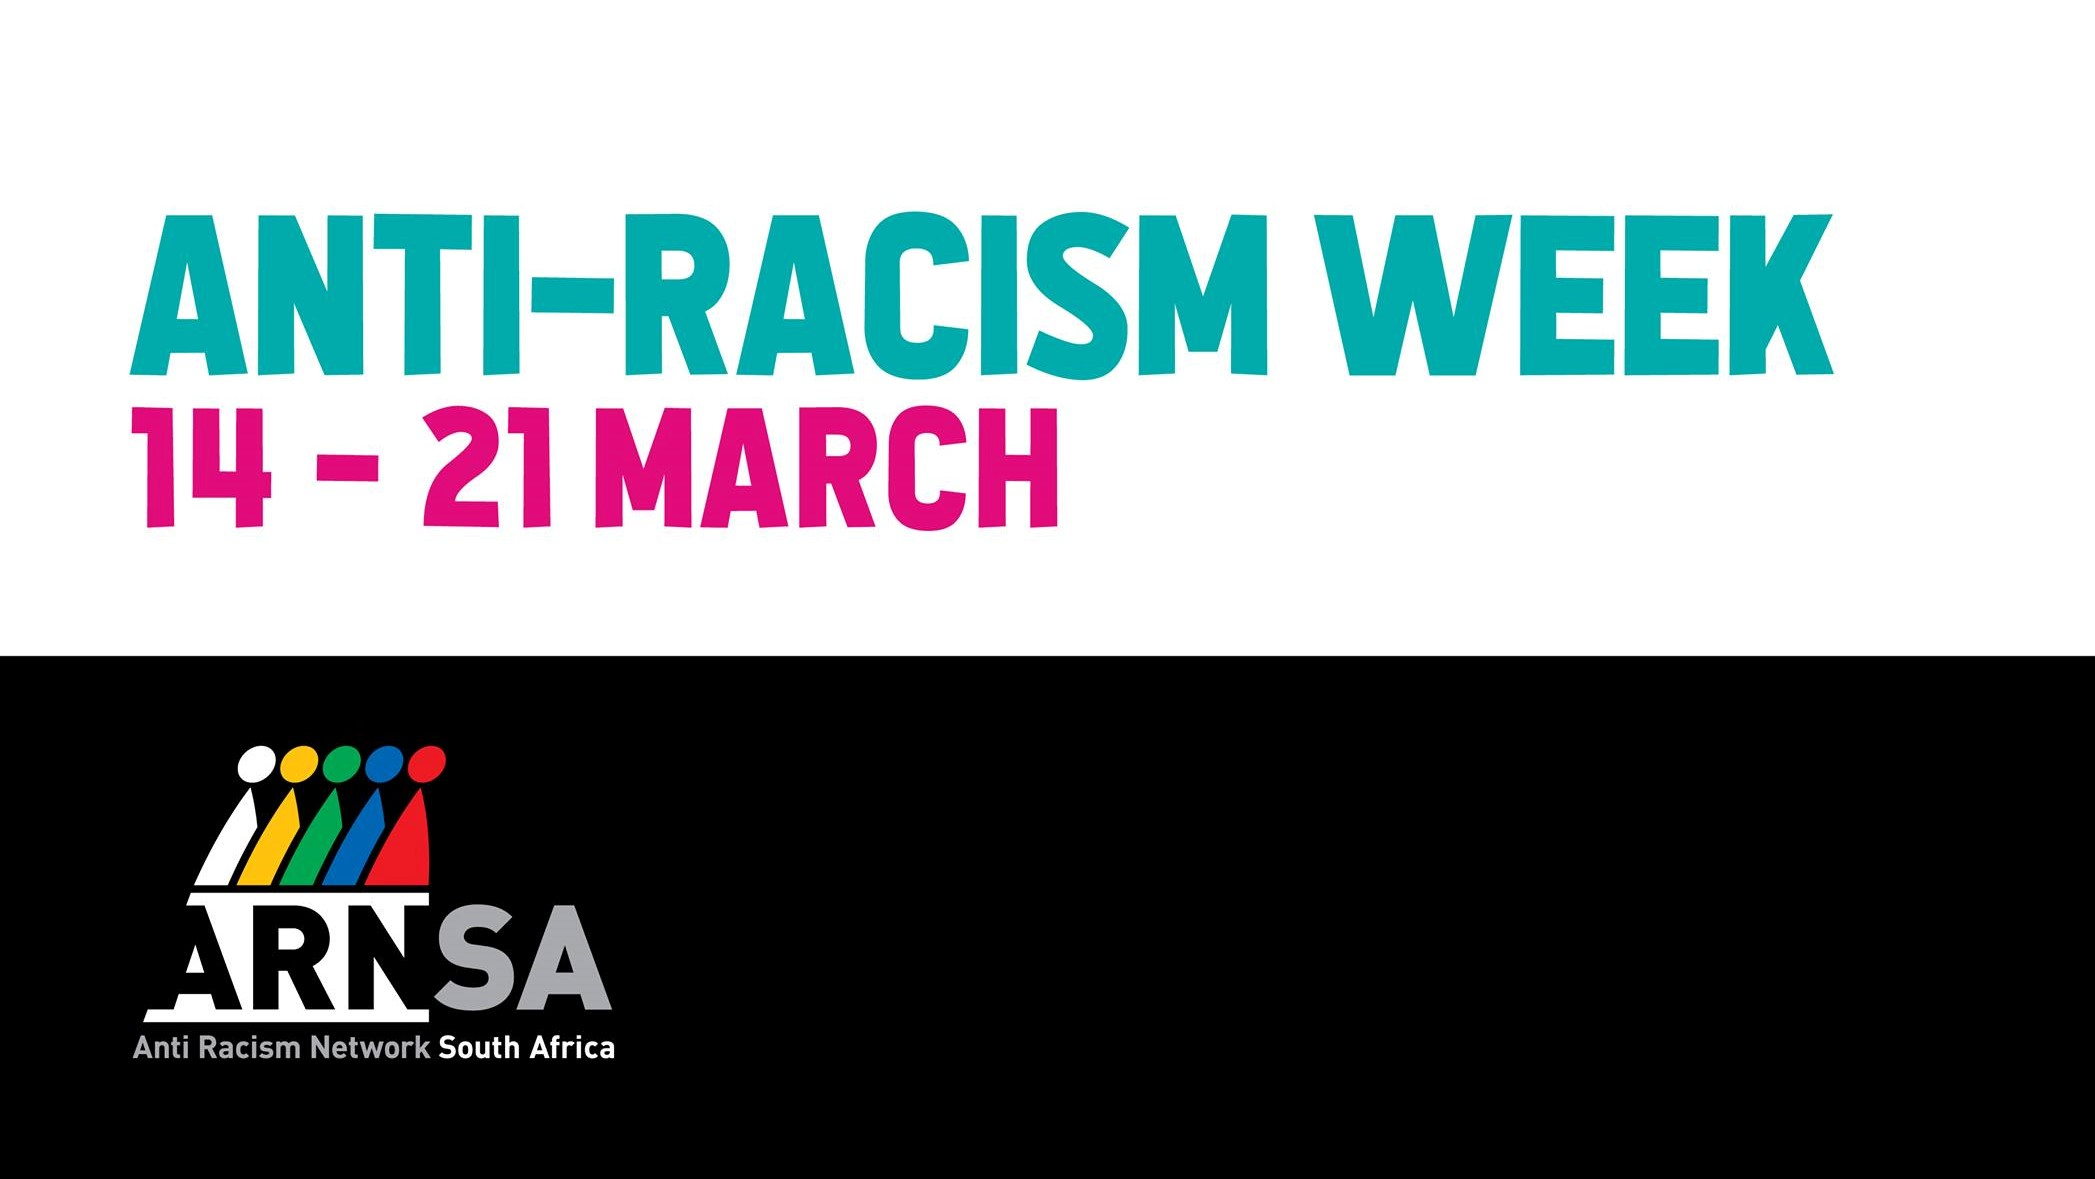 Anti - Racism Week 14 - 21 March 2019